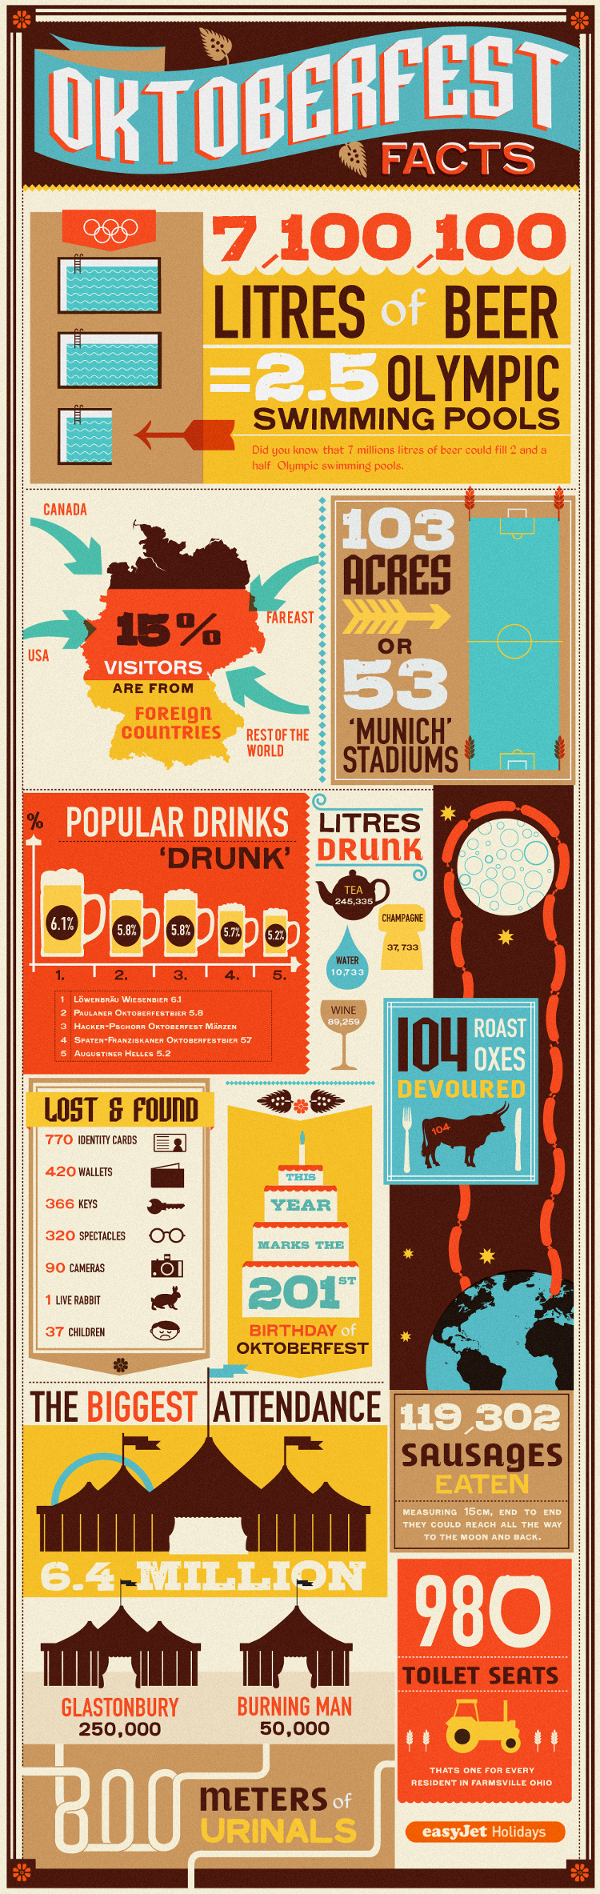 This amazing infographic is thanks to  EasyJet Holidays